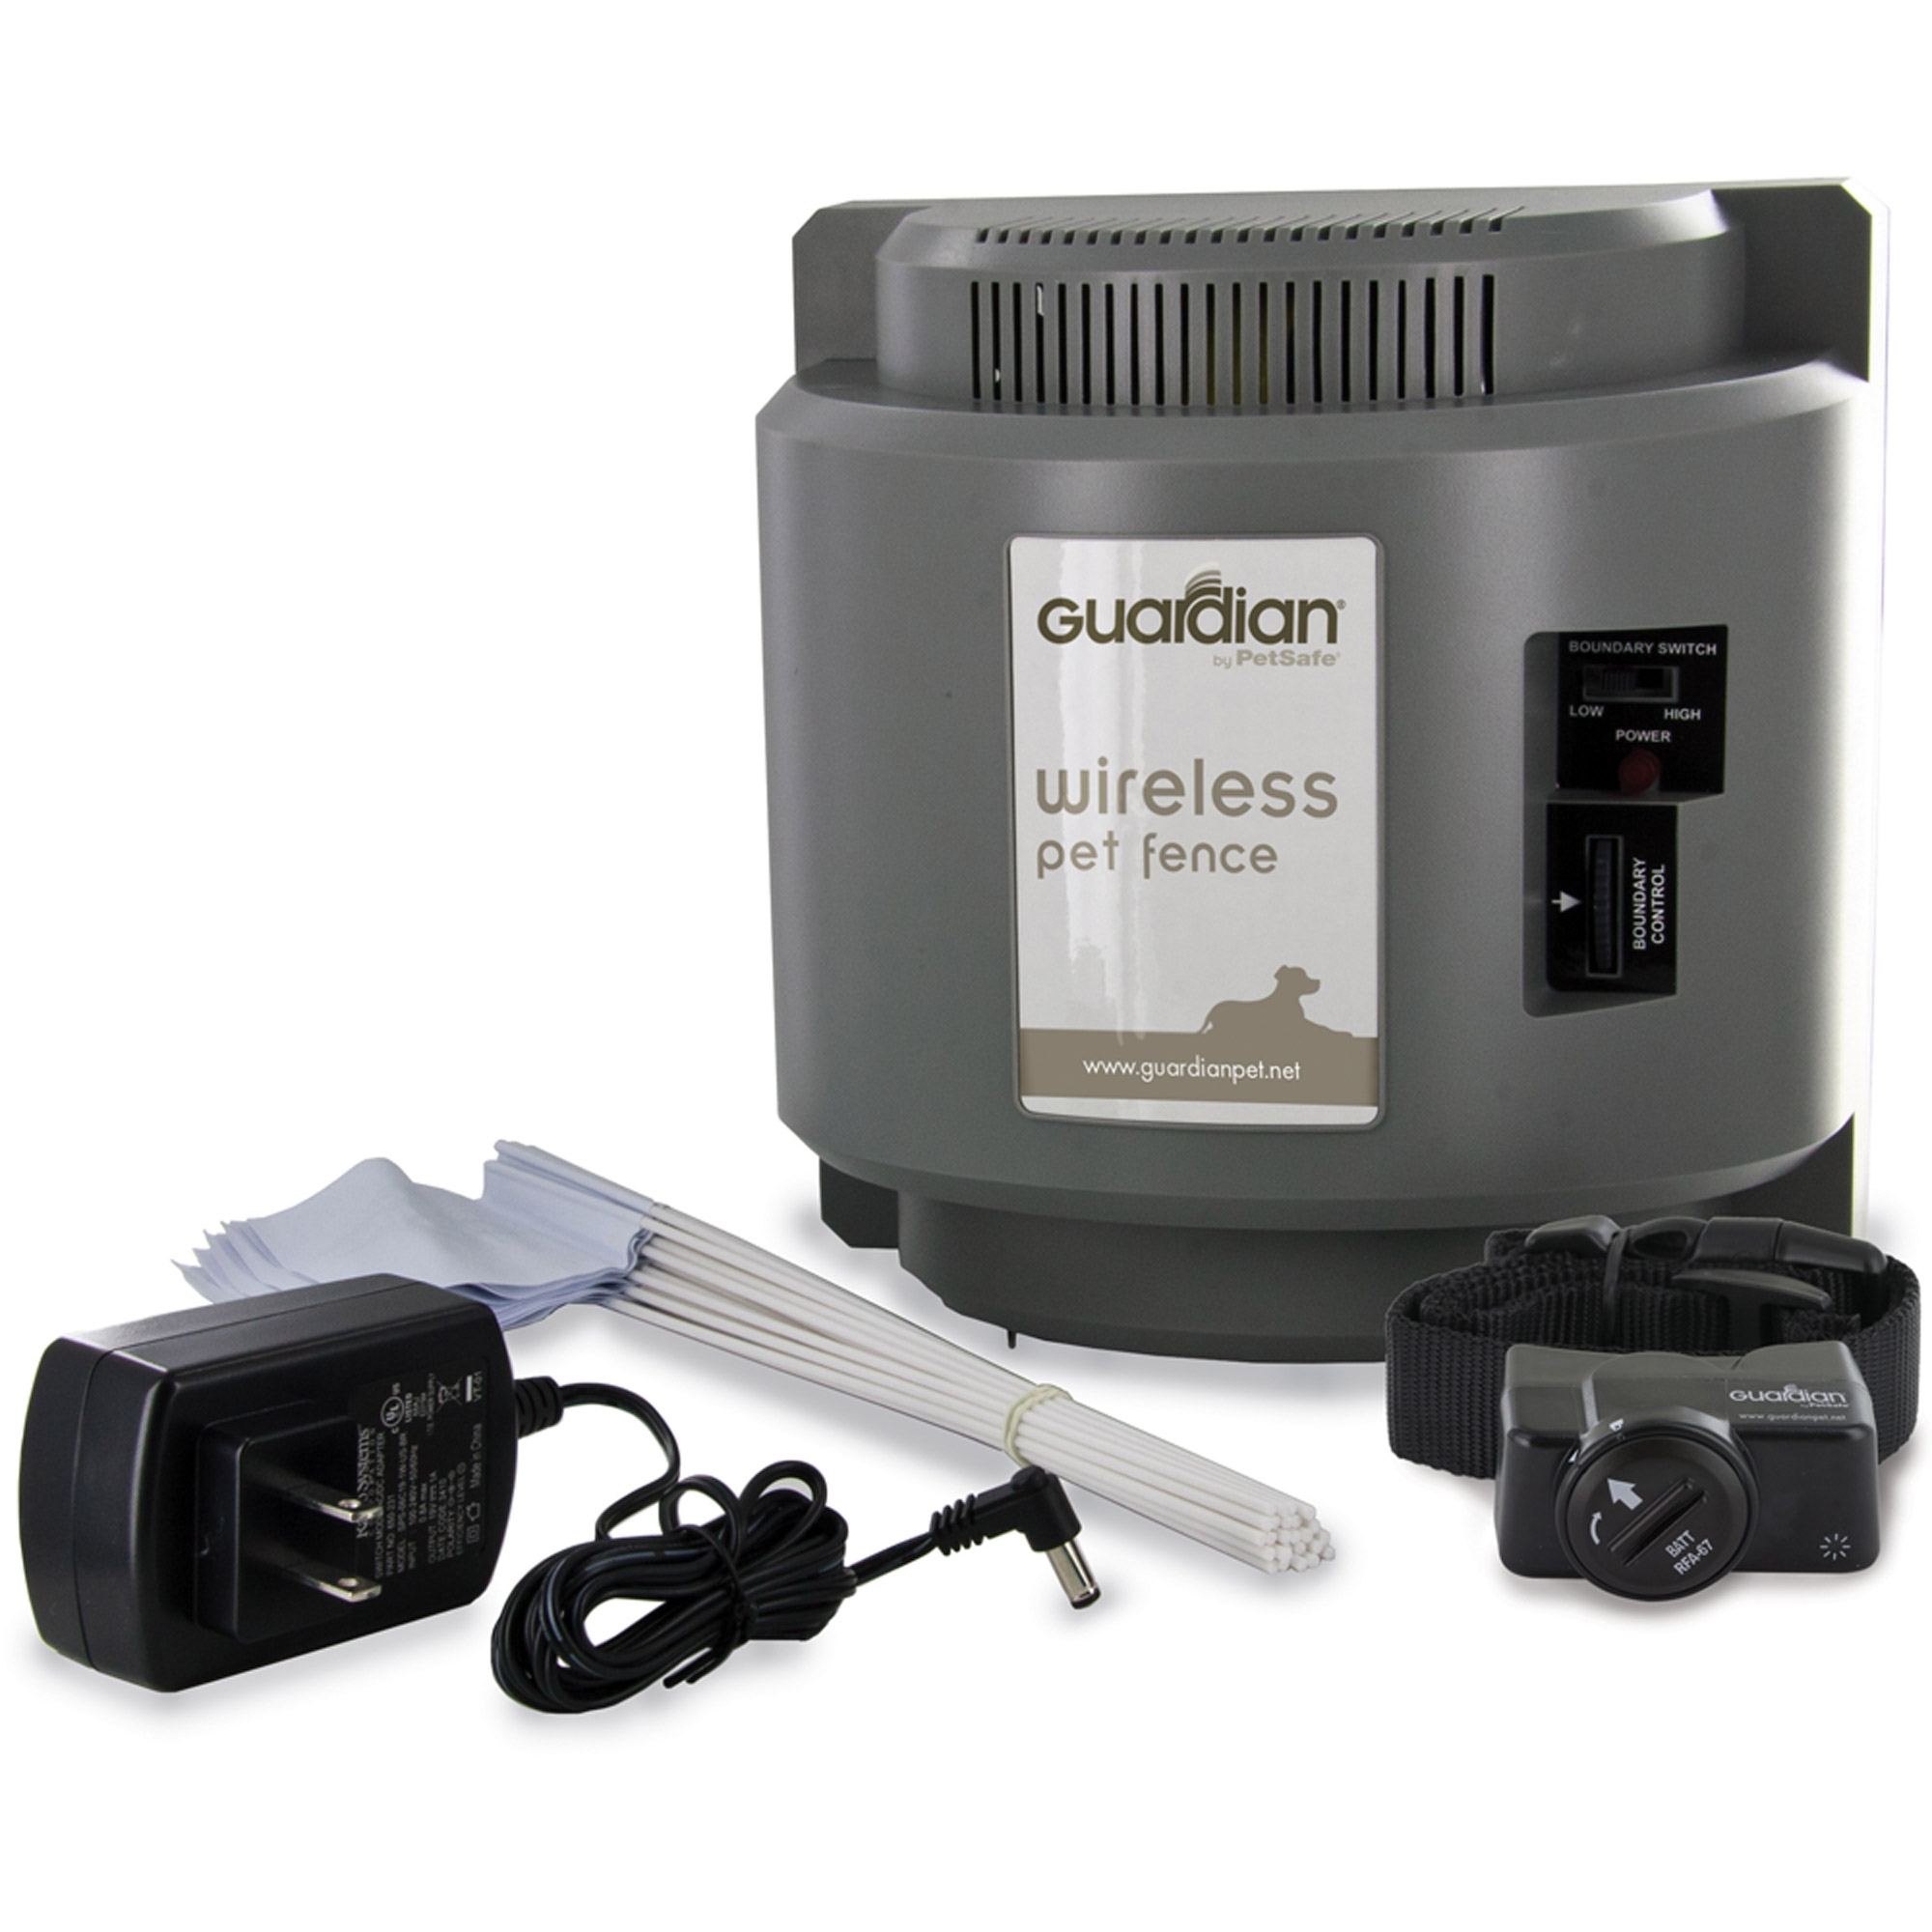 Guardian by PetSafe Wireless Fence